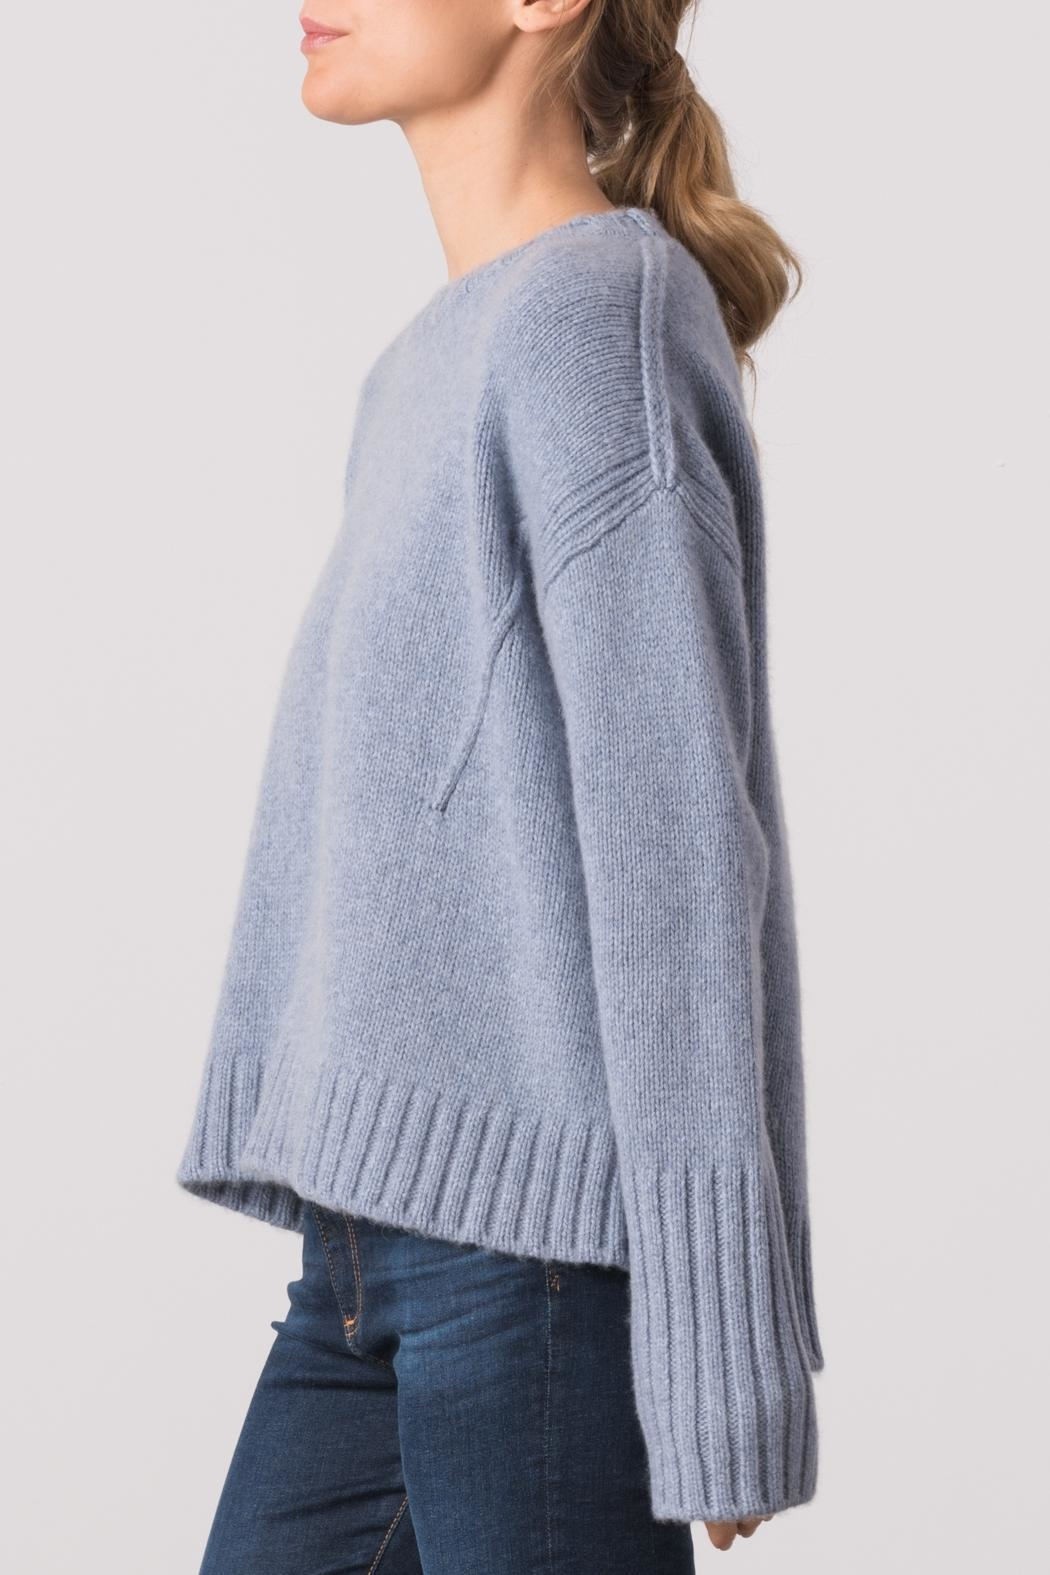 Margaret O'Leary Jana Luxe Pullover - Front Full Image